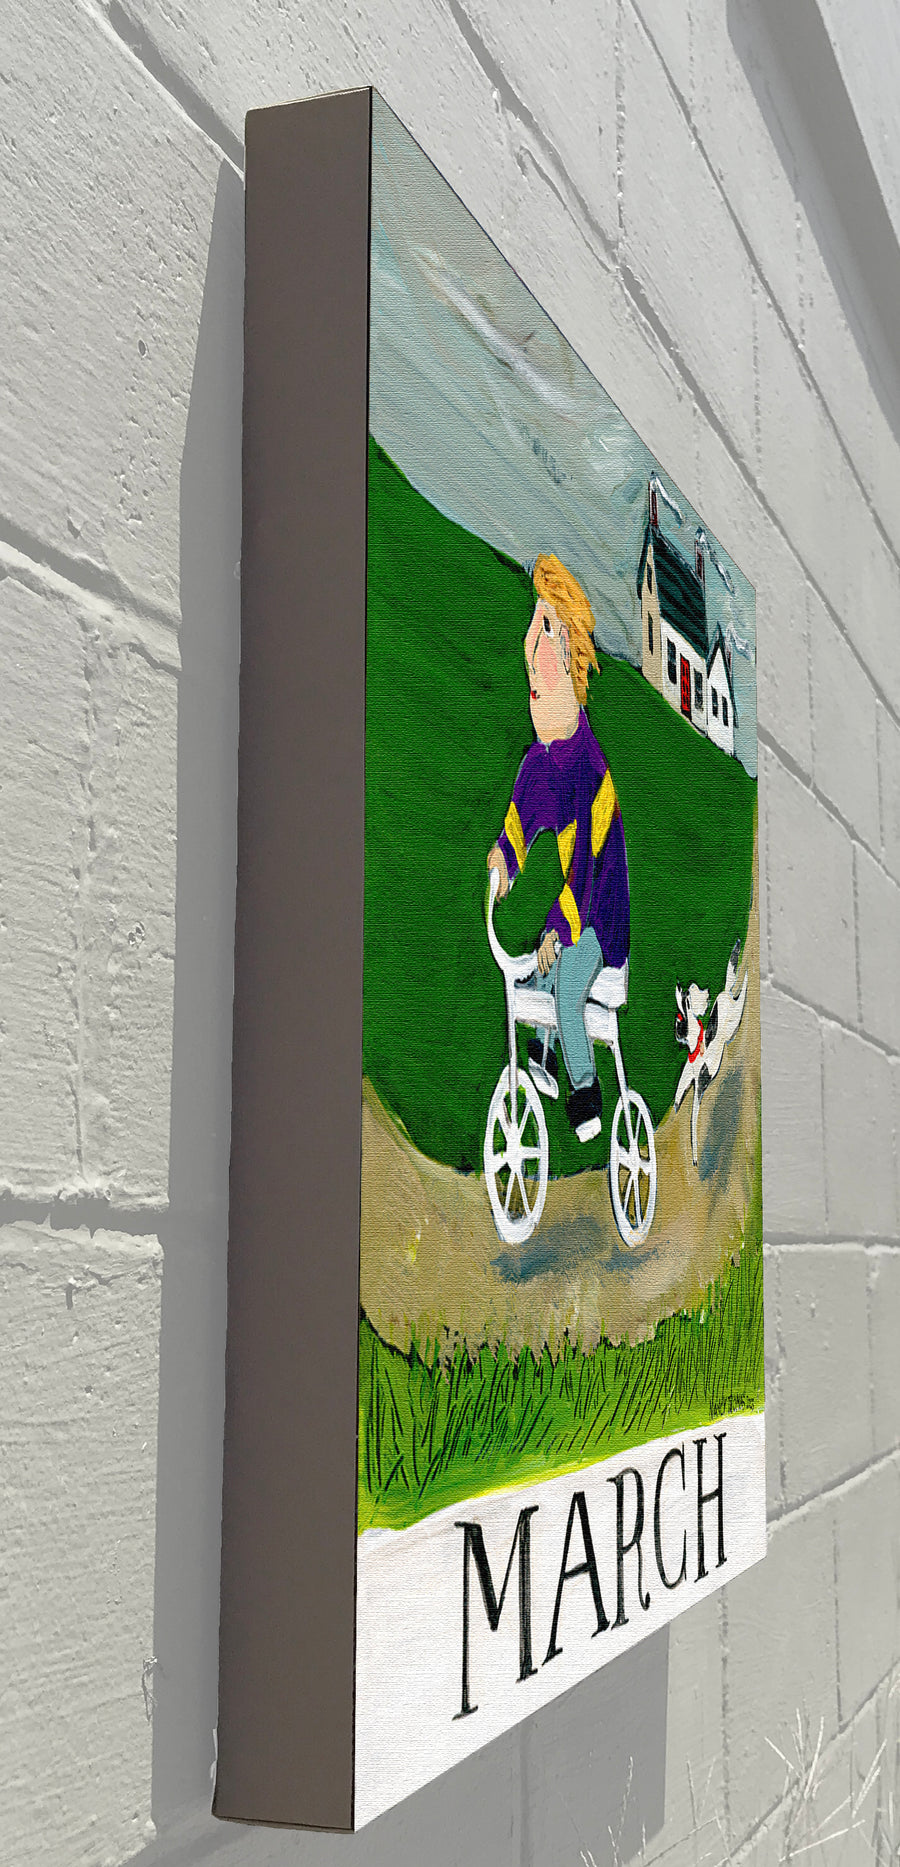 Gallery Grand - March - Children's Month Series (Bicycle Boy)